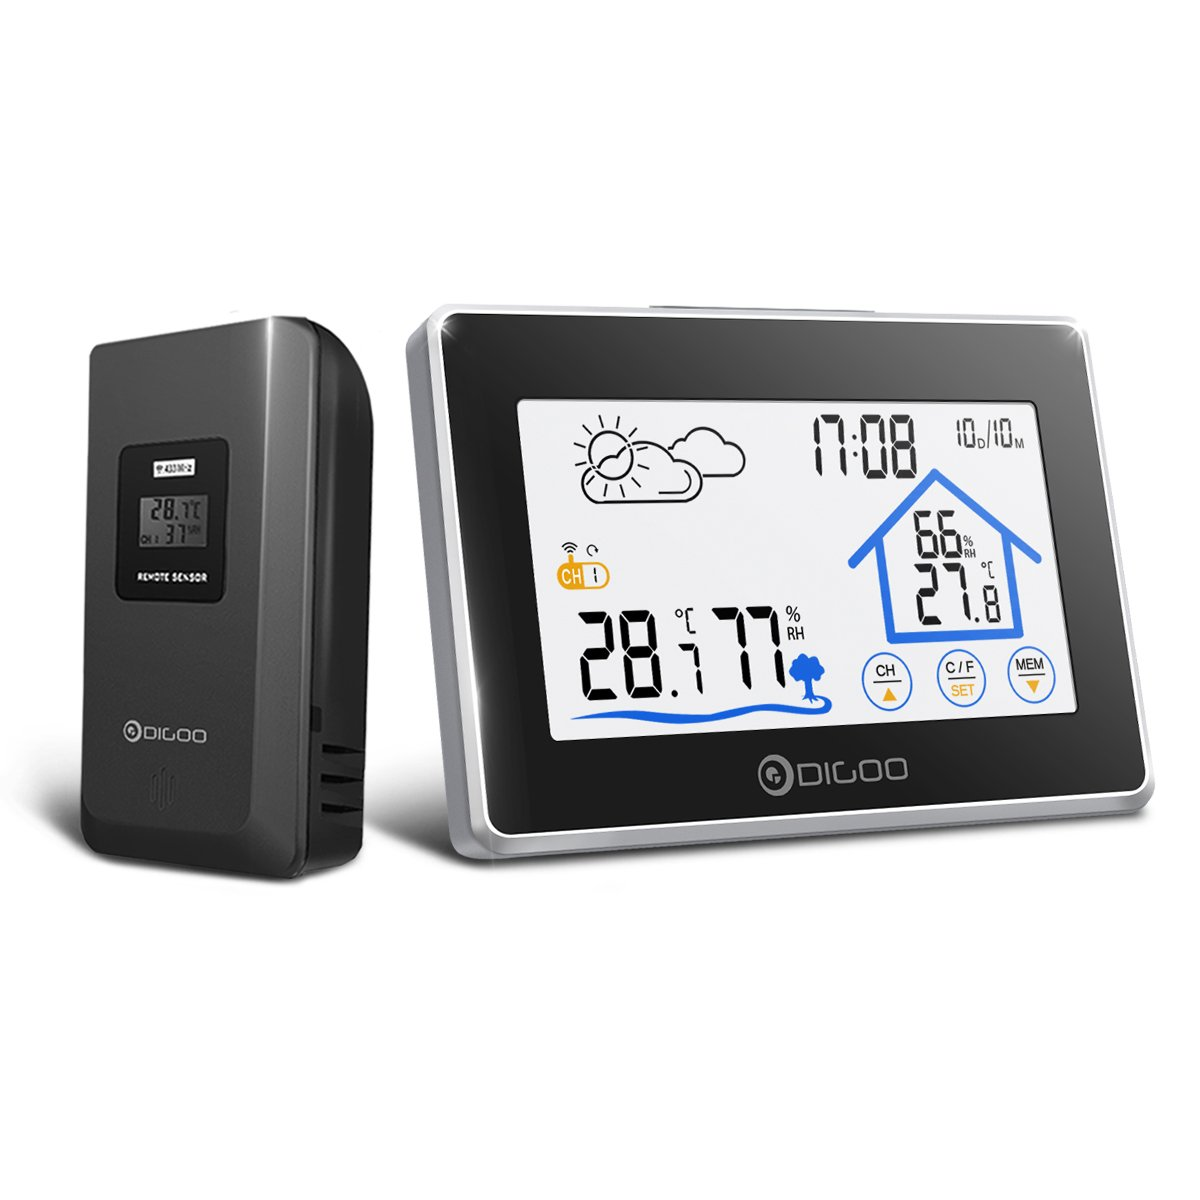 DIGOO DG-TH8380 Indoor Outdoor Thermometer Digital Hygrometer Wireless Weather Station Temperature Humidity Monitor Gauge With Outdoor Sensor,Touchscreen,Blacklight